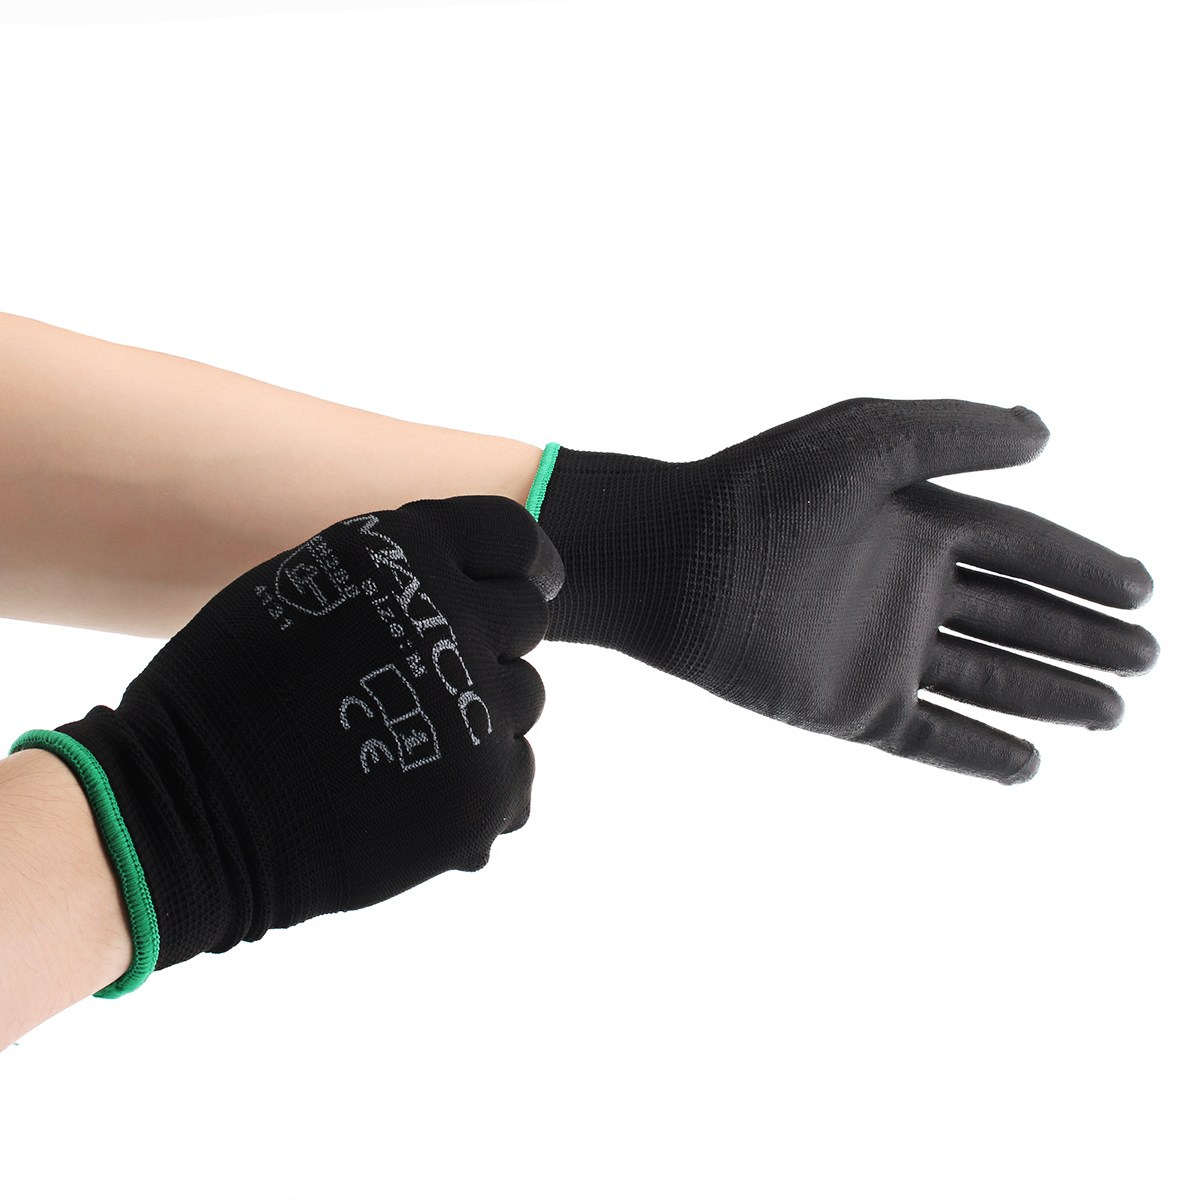 NEW Safurance 12Pairs PU Nitrile Coated Safety Work Gloves Garden Builders Grip Size M/L/XL Workplace Safety oris 658